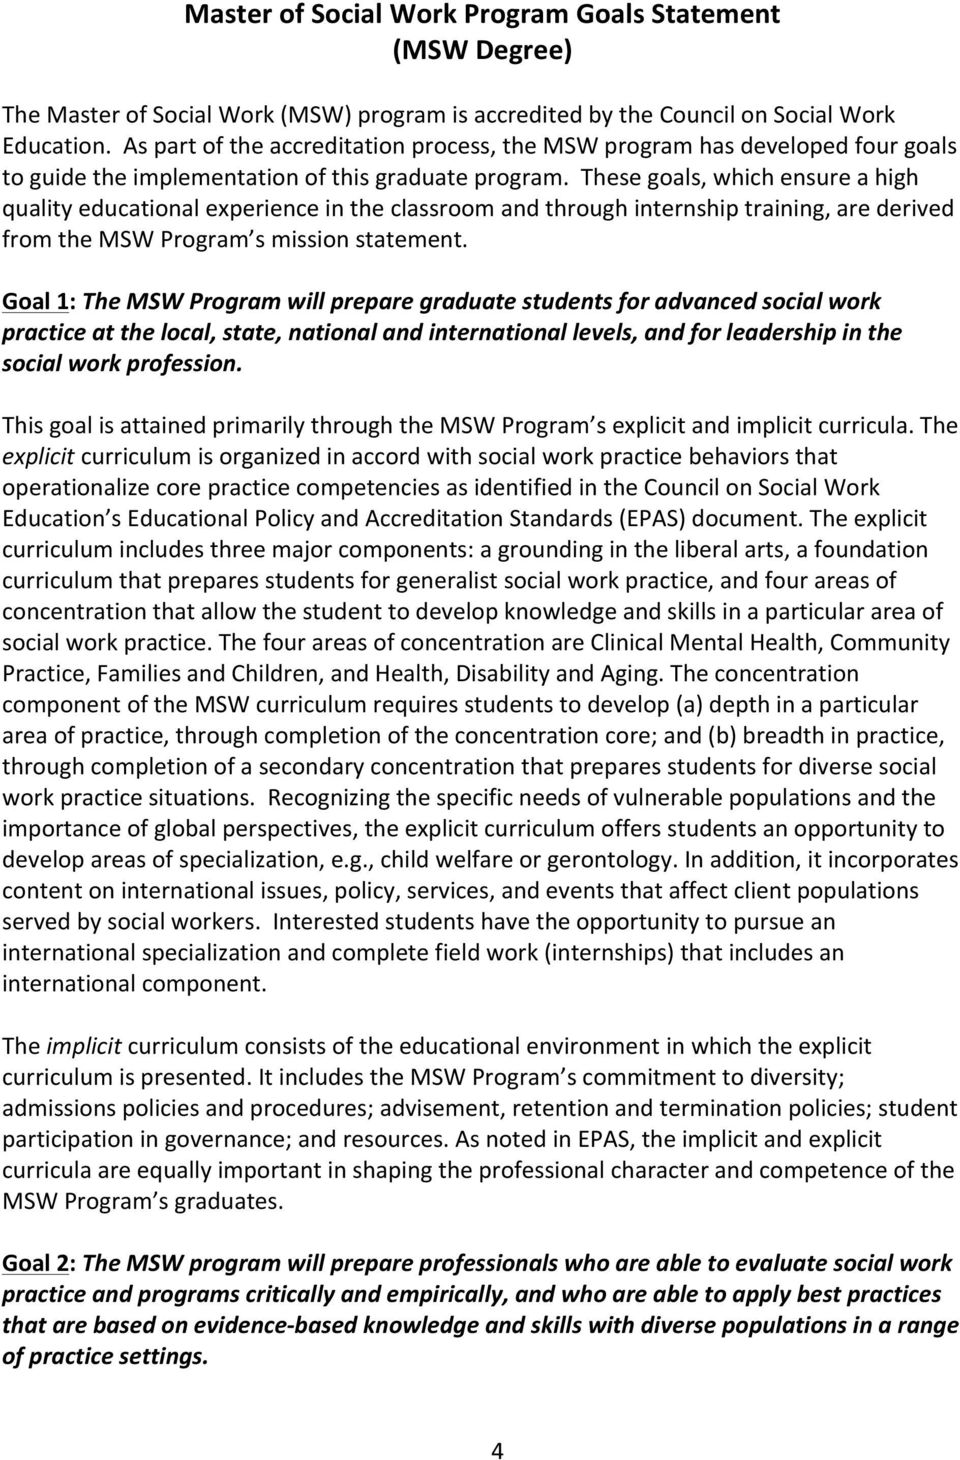 These goals, which ensure a high quality educational experience in the classroom and through internship training, are derived from the MSW Program s mission statement.